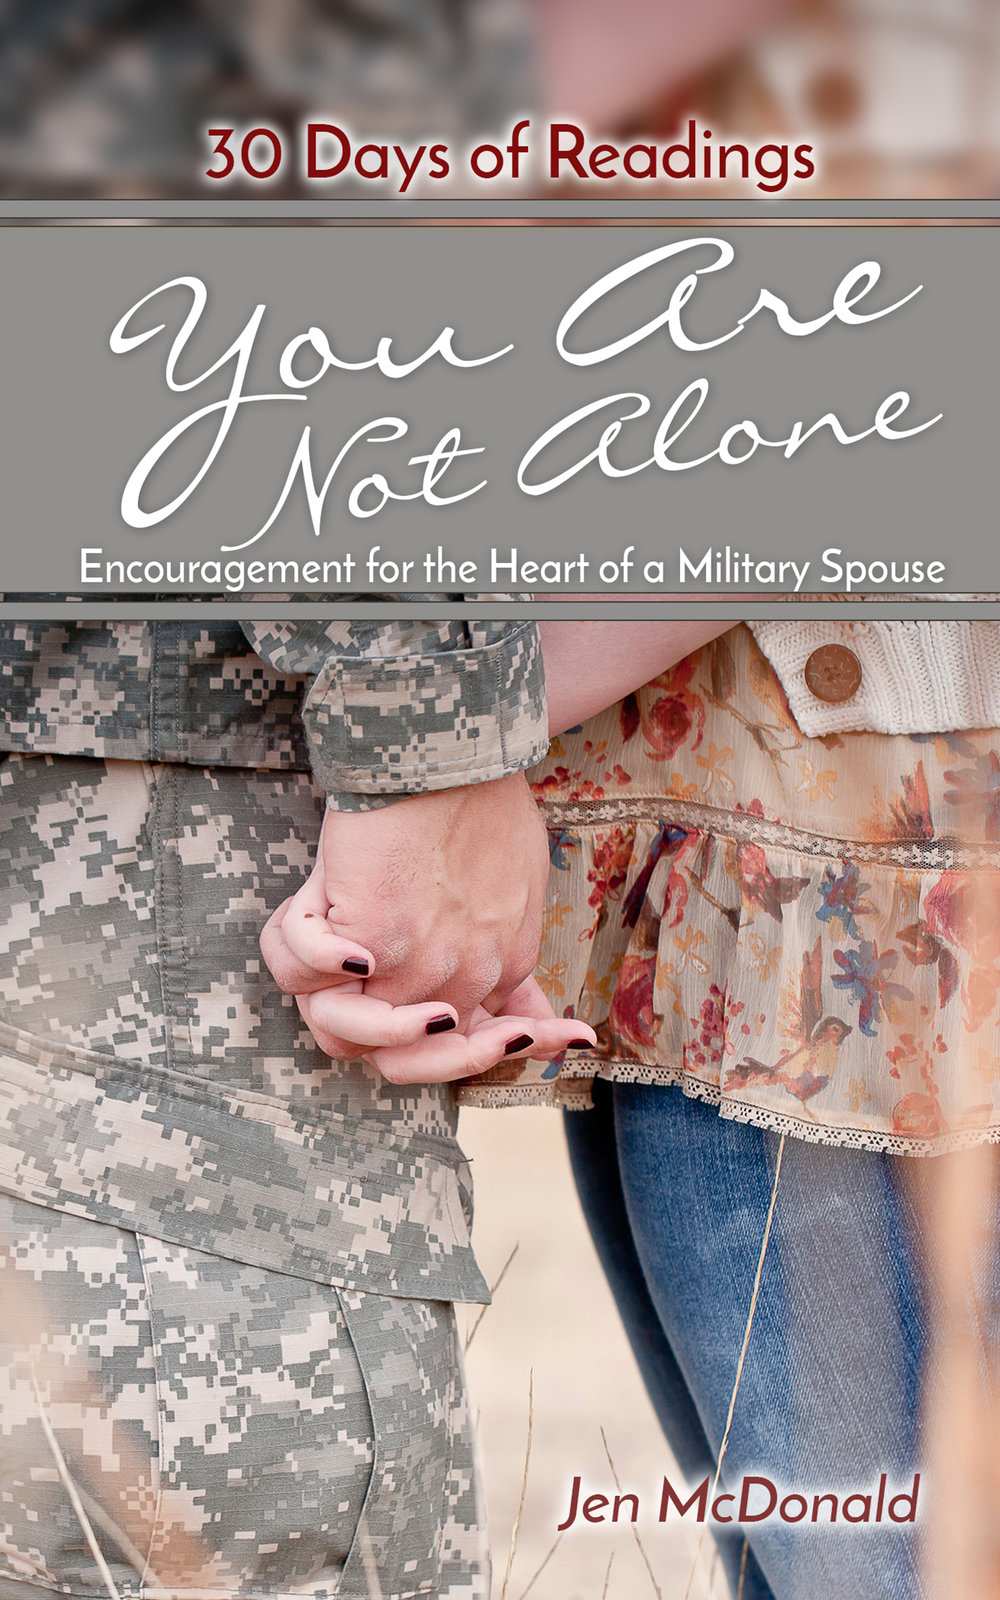 Get it in print or Kindle format! You Are Not Alone: Encouragement for the Heart of a Military Spouse